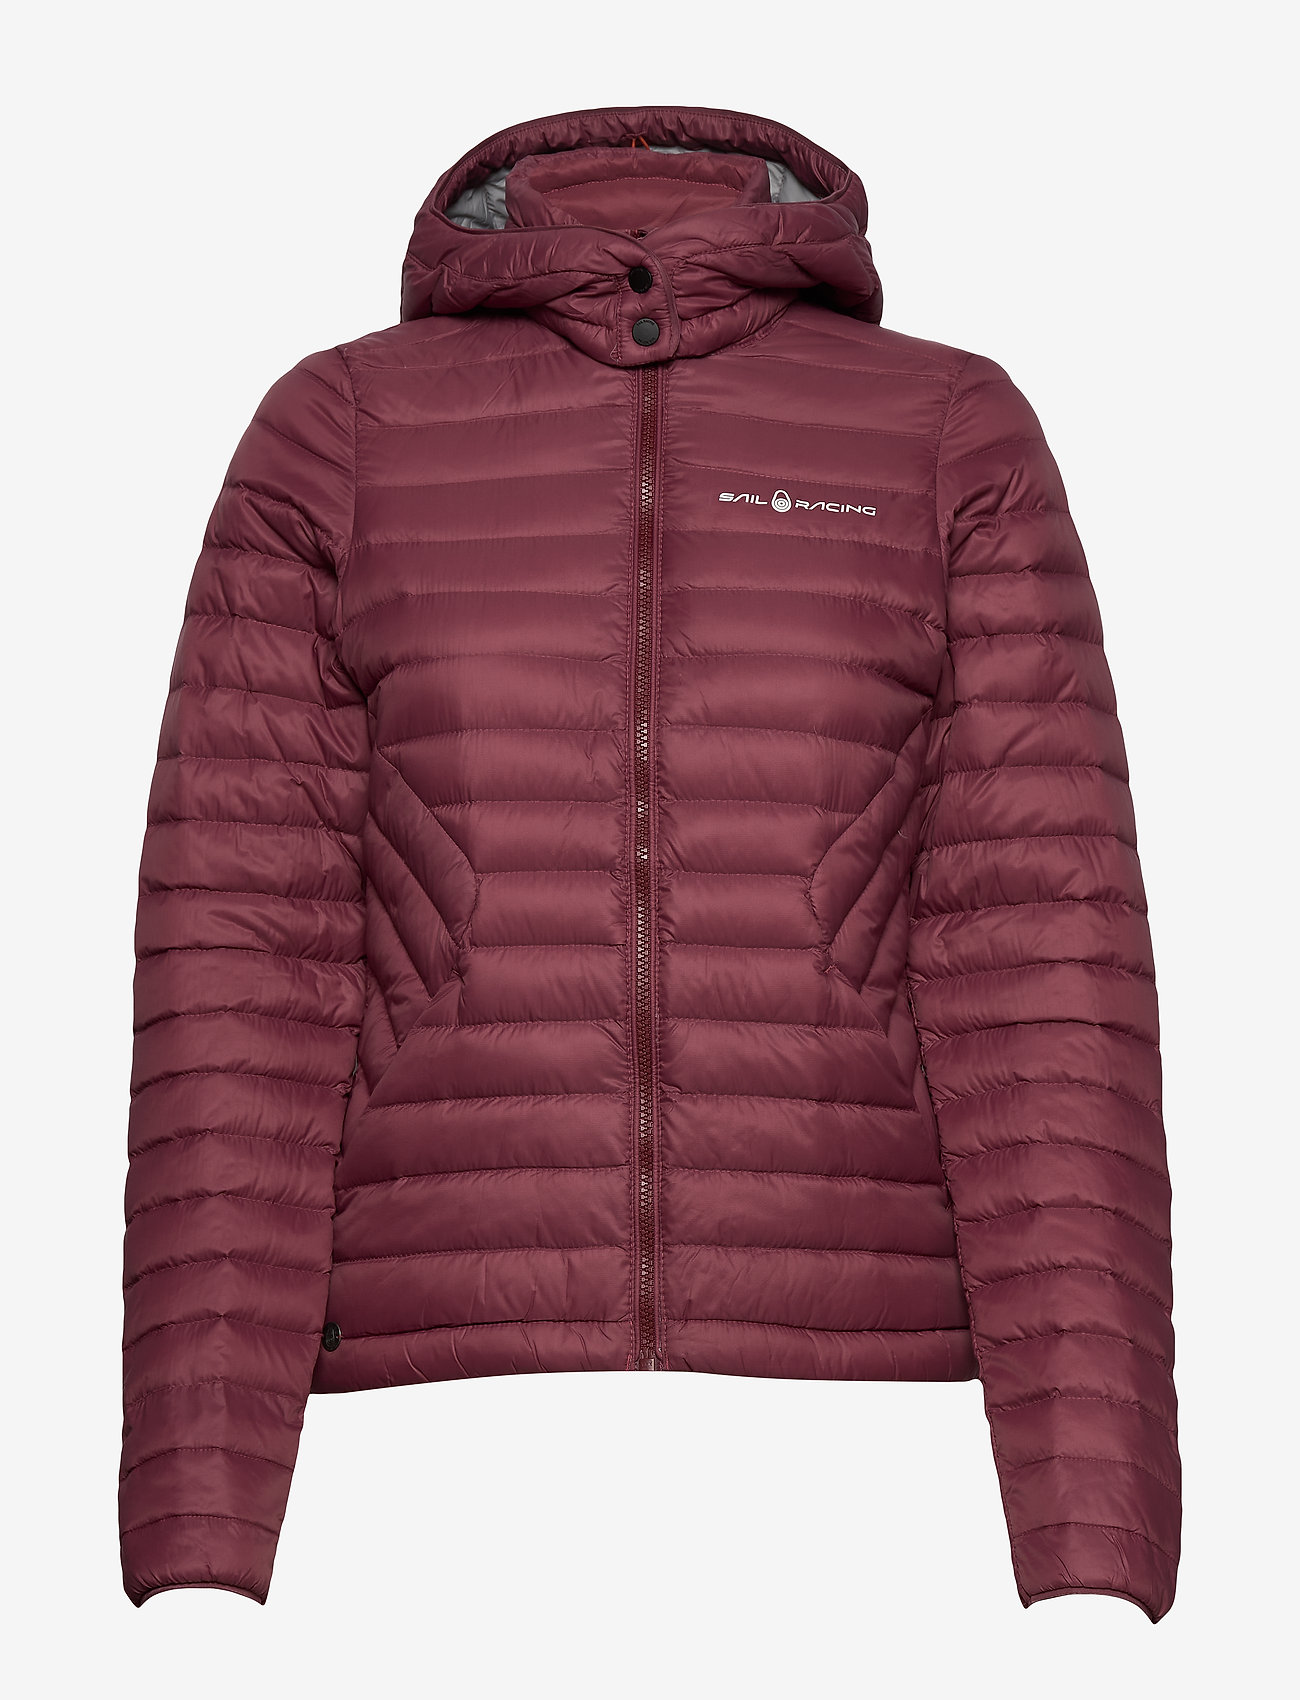 Sail Racing - W LINK DOWN JACKET - sports jackets - maroon - 1